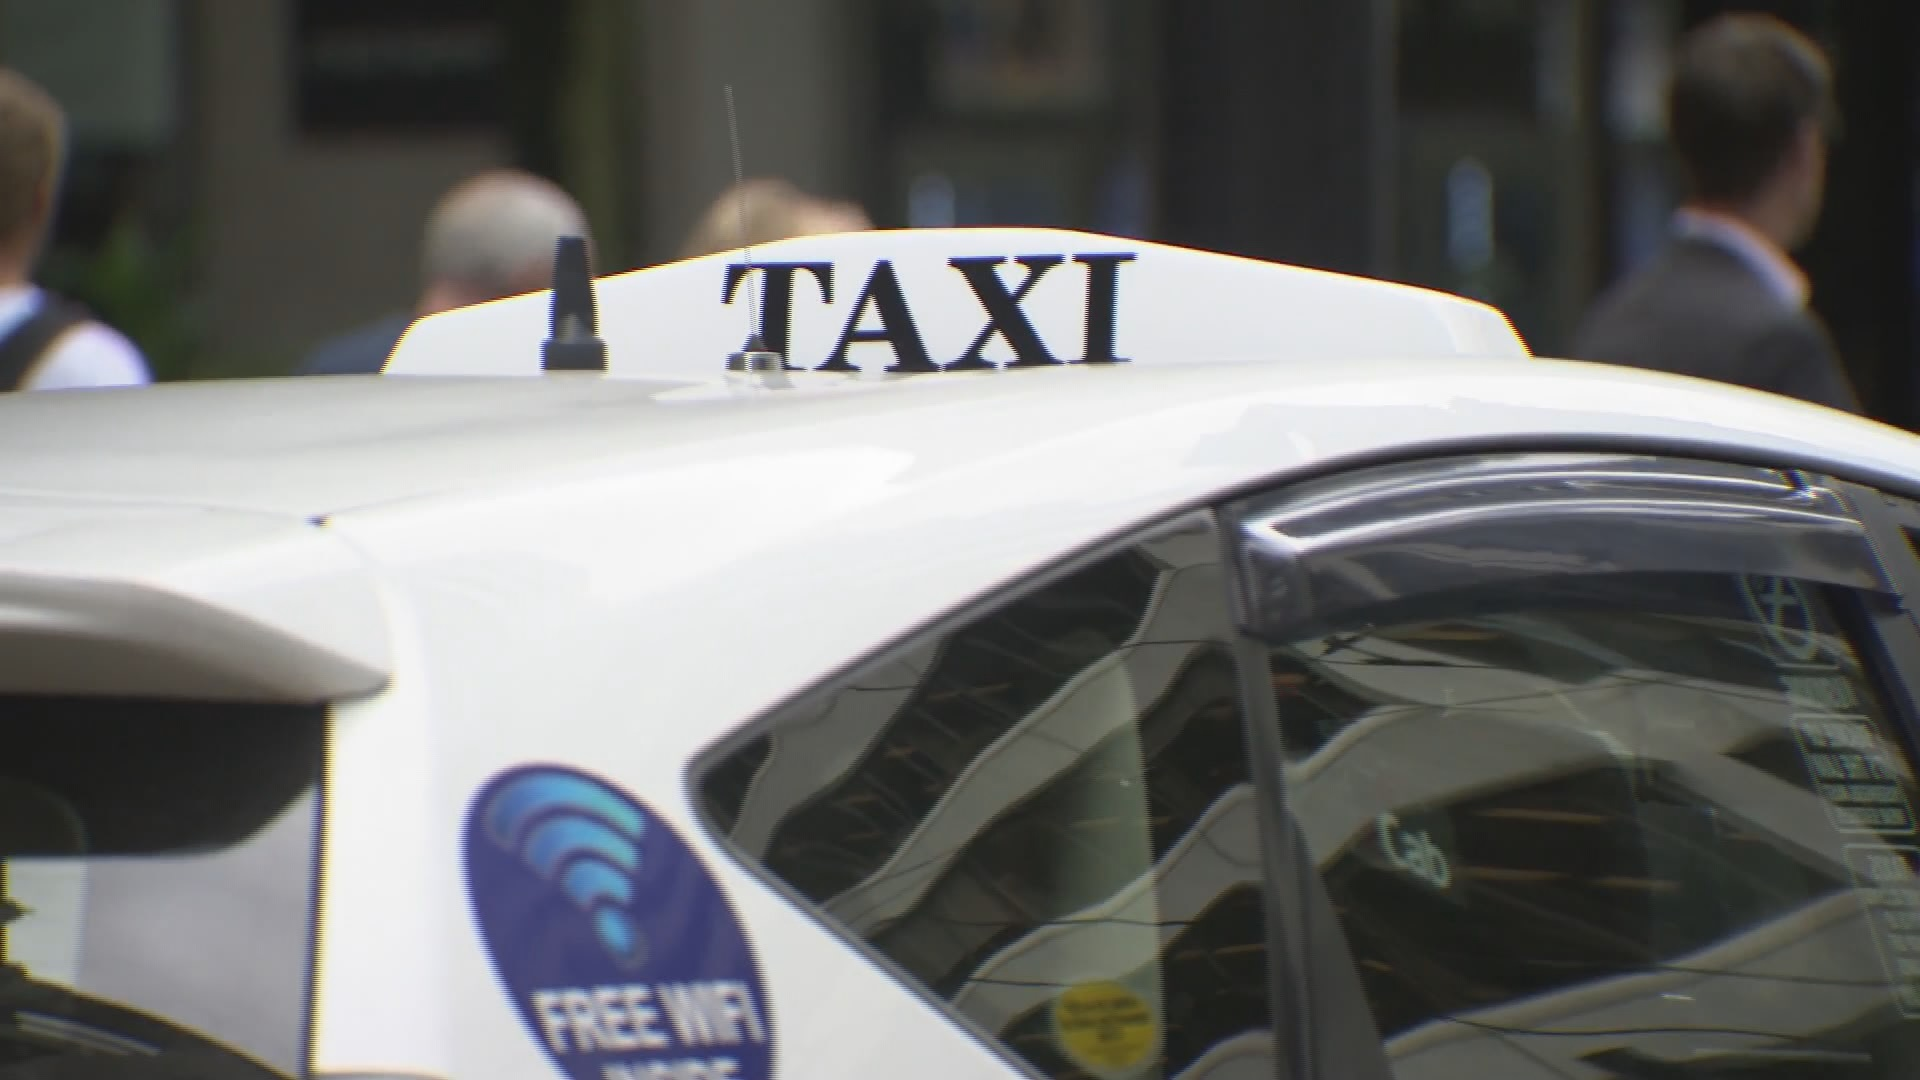 Taxi Maple Ridge >> Metro Vancouver Taxi Drivers Vow To Fight Ridesharing